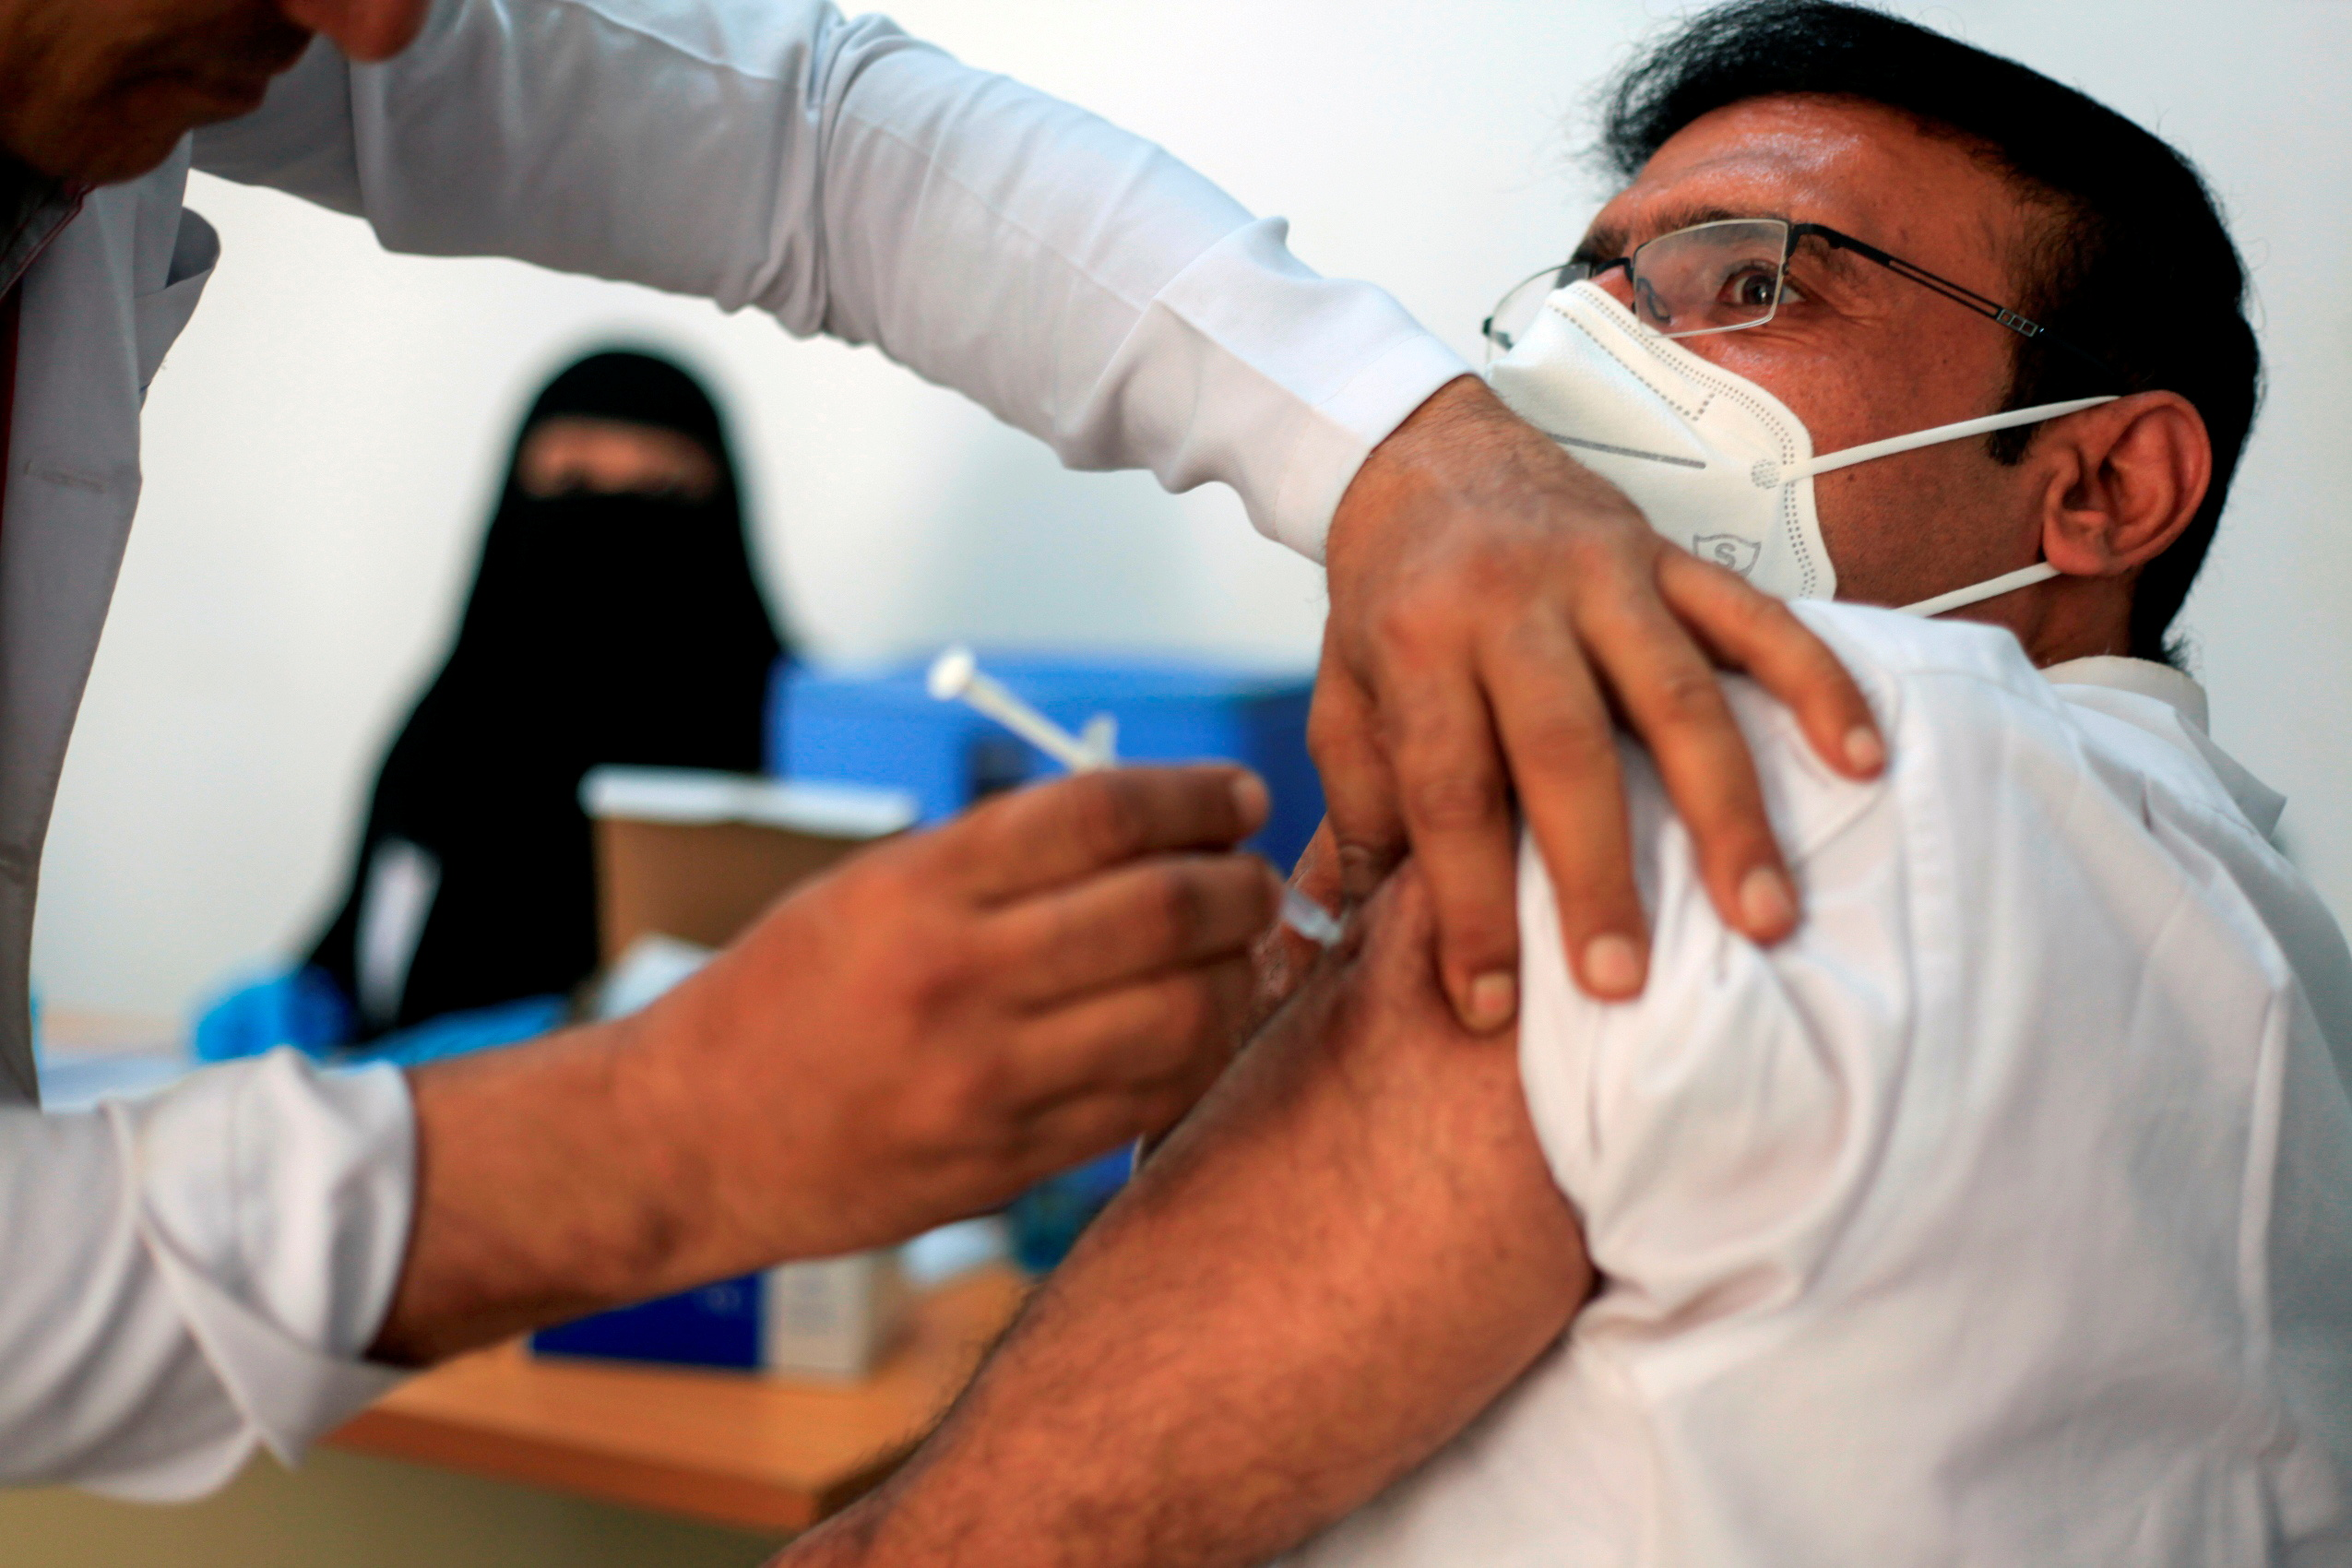 A man receives the AstraZeneca vaccine against the coronavirus disease (COVID-19), at a medical center in Taiz, Yemen April 22, 2021. Picture taken April 22, 2021. REUTERS/Anees Mahyoub